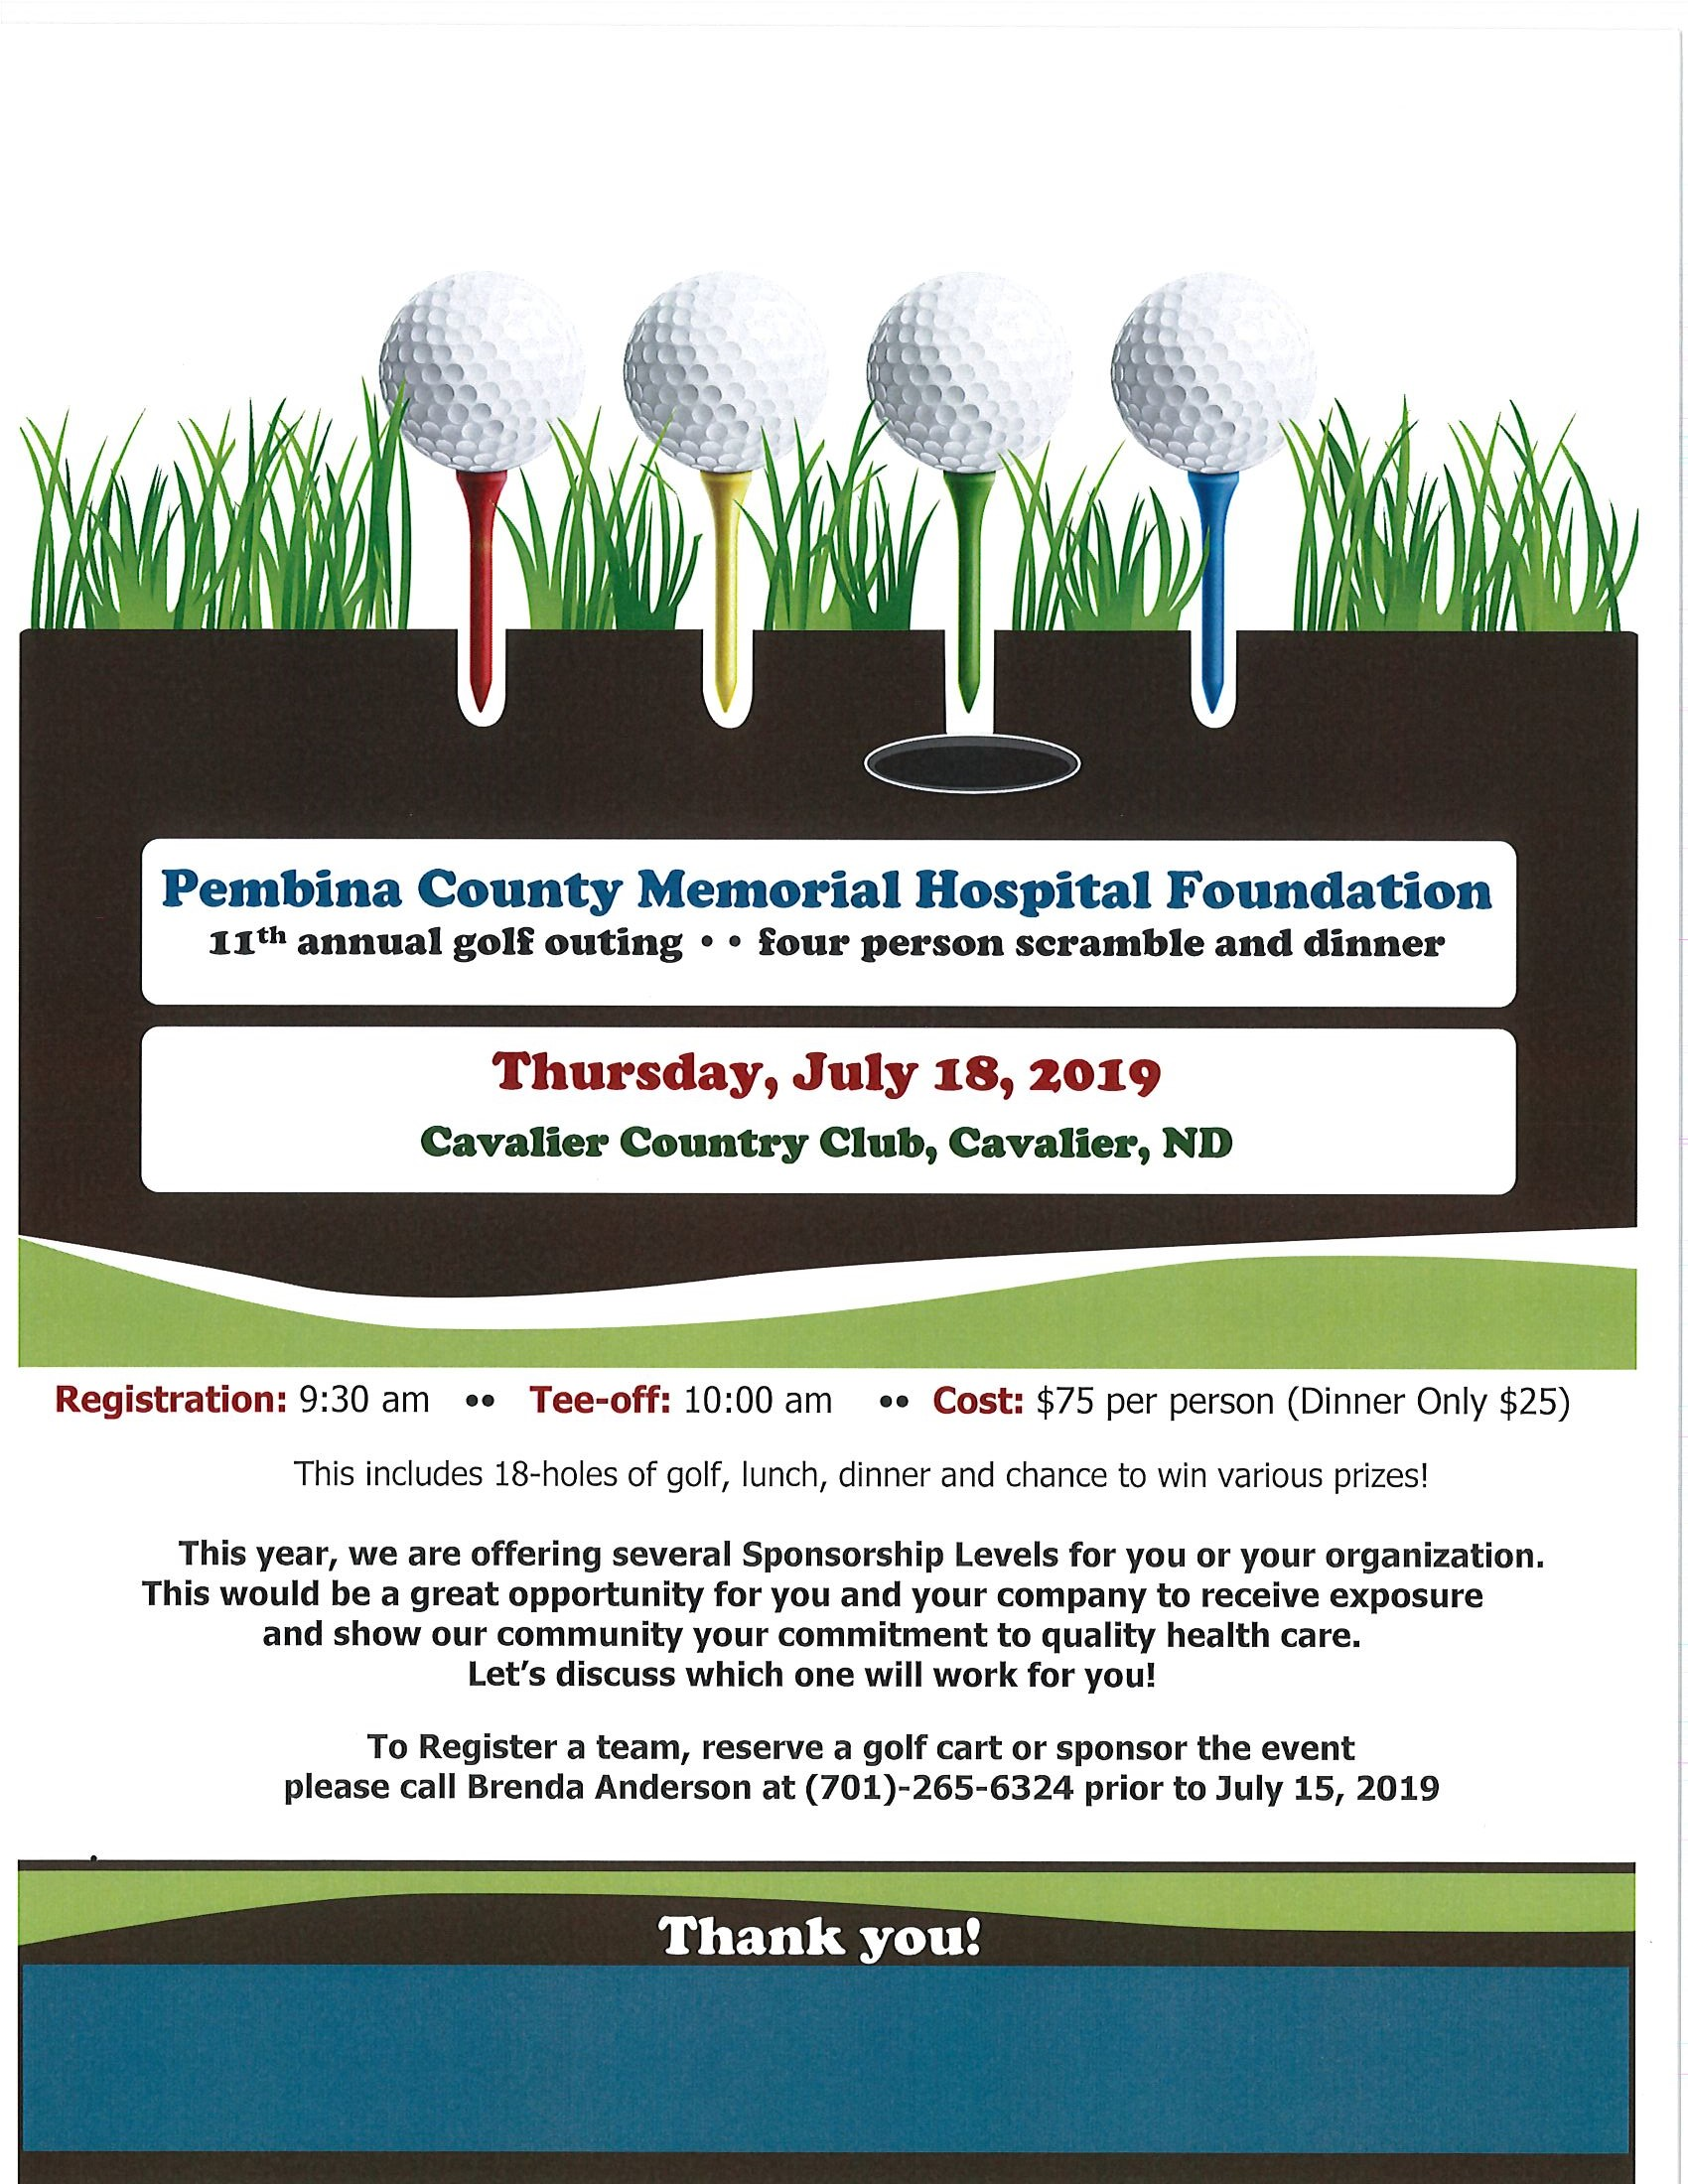 PCMH Foundation Golf Outing & Dinner